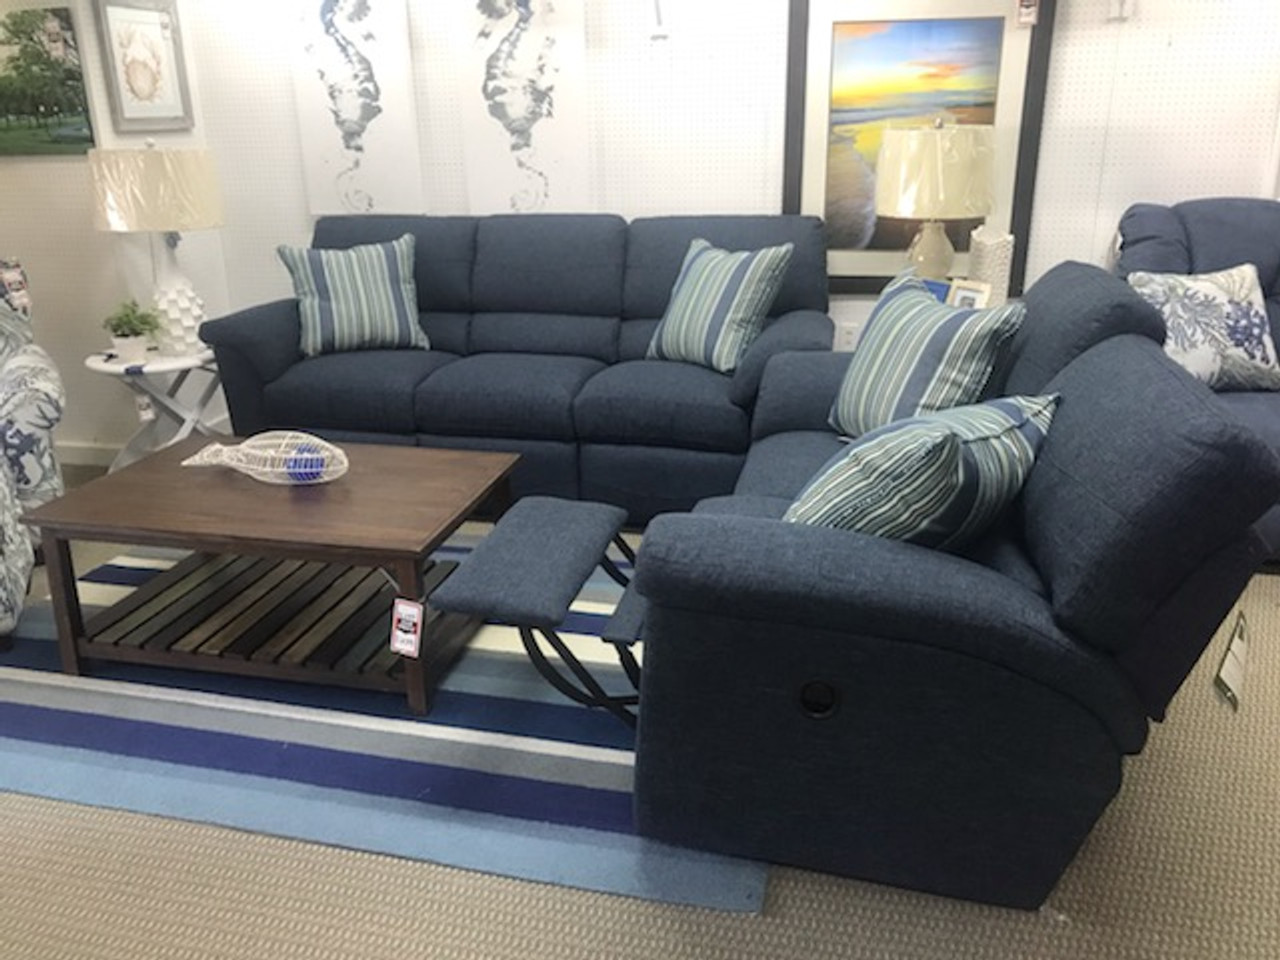 Swell Reese Reclining Blue Sofa Andrewgaddart Wooden Chair Designs For Living Room Andrewgaddartcom